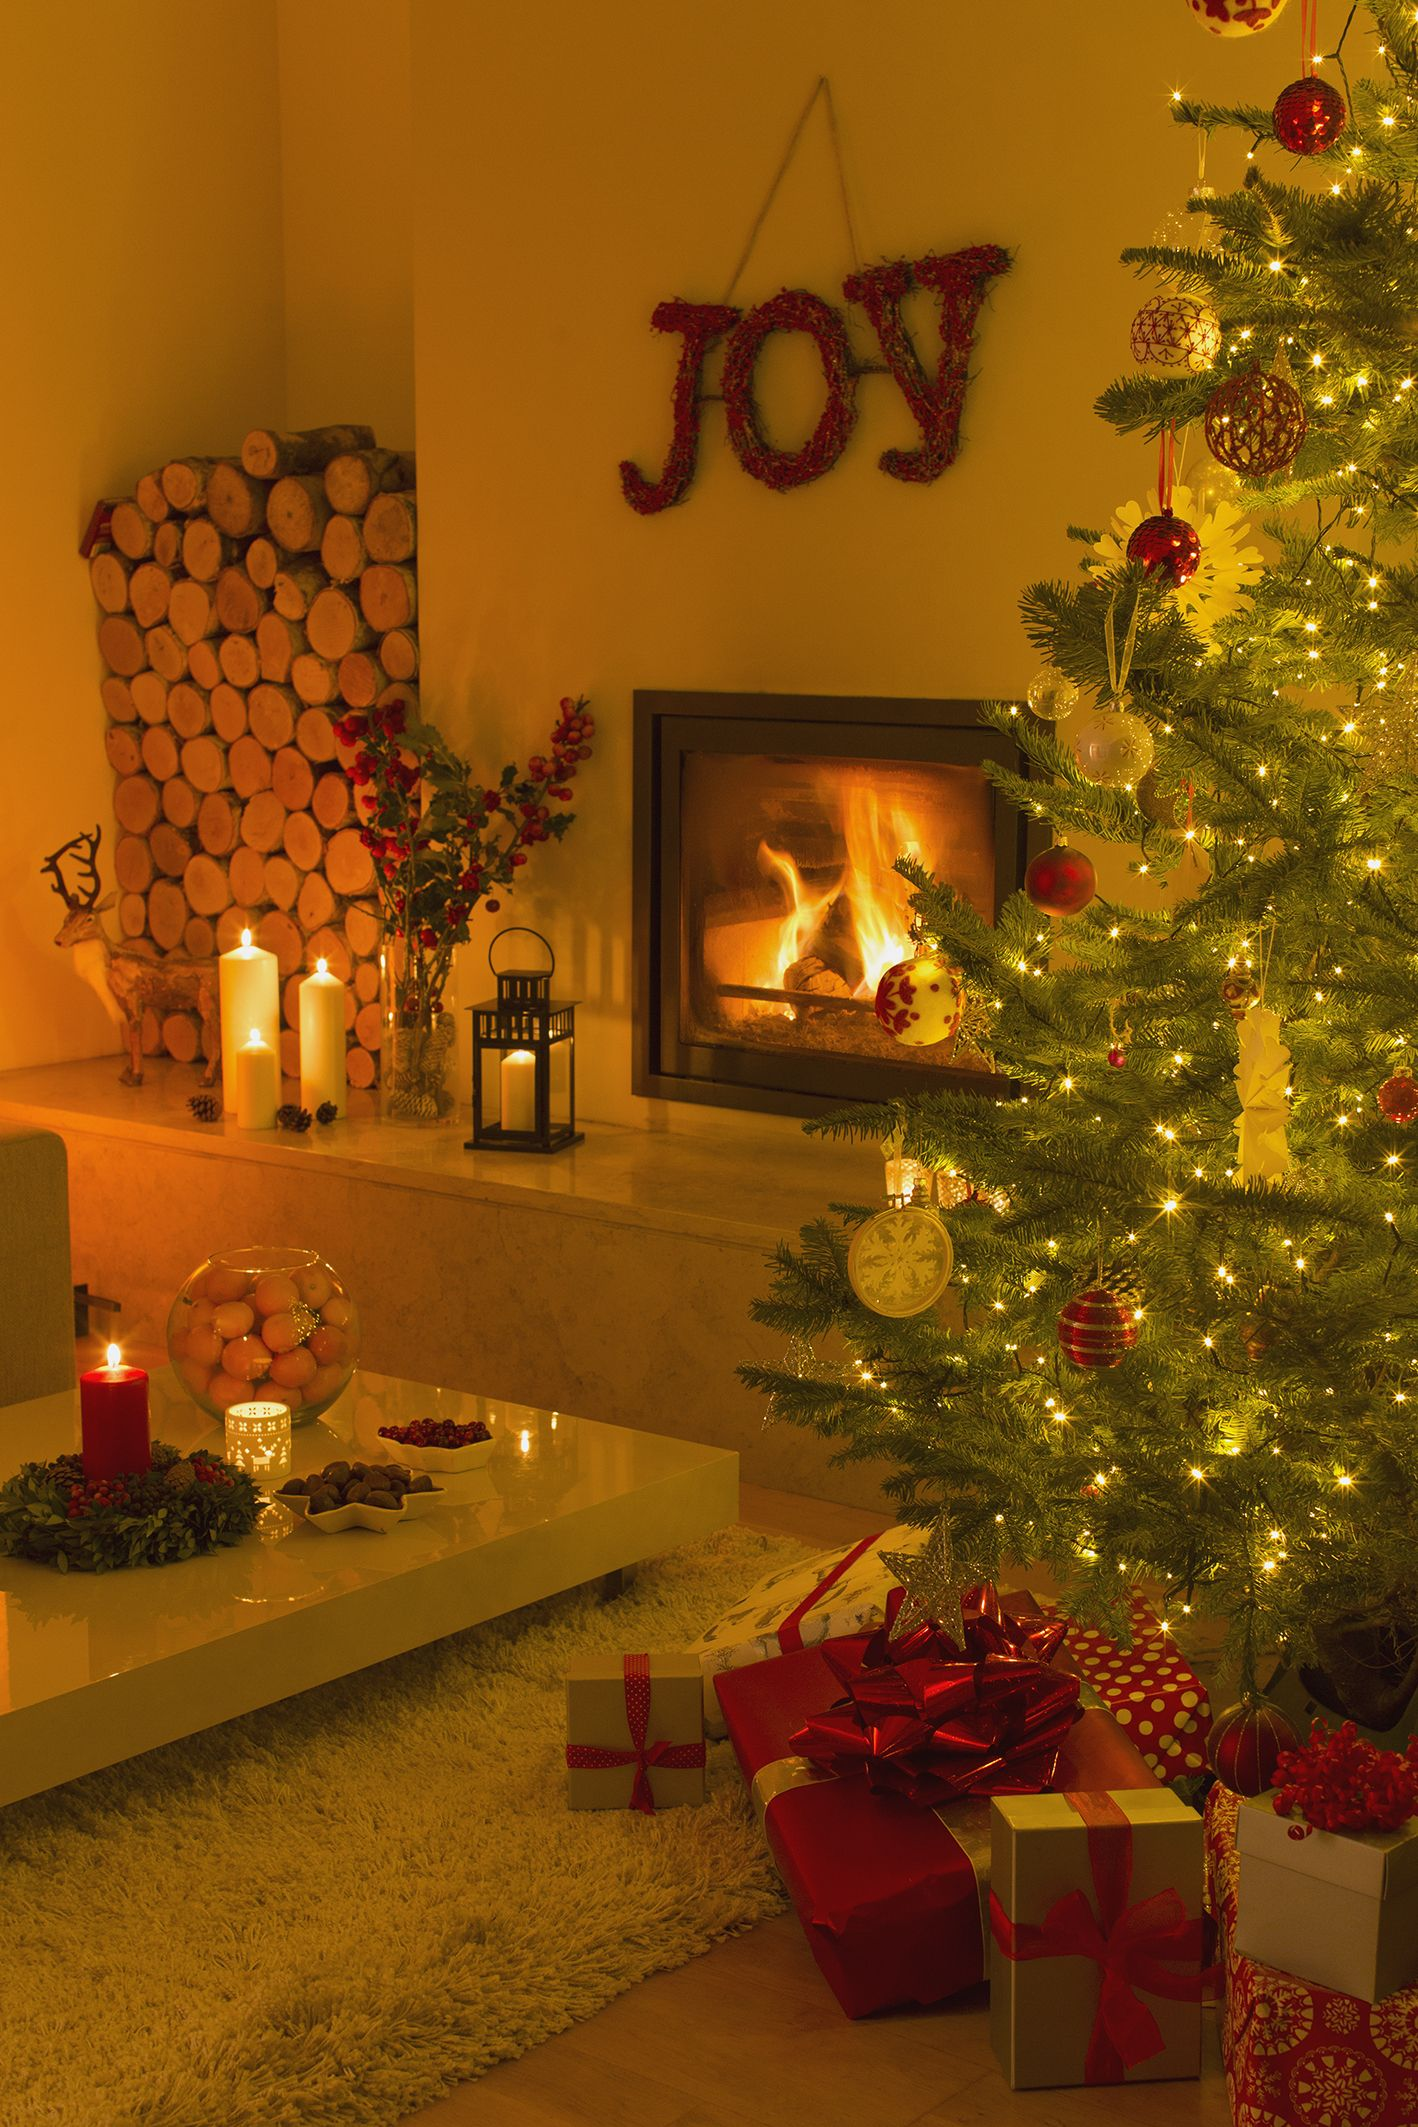 Ambient Fireplace And Candles Illuminating Living Room With Christmas Tree  And Decorations